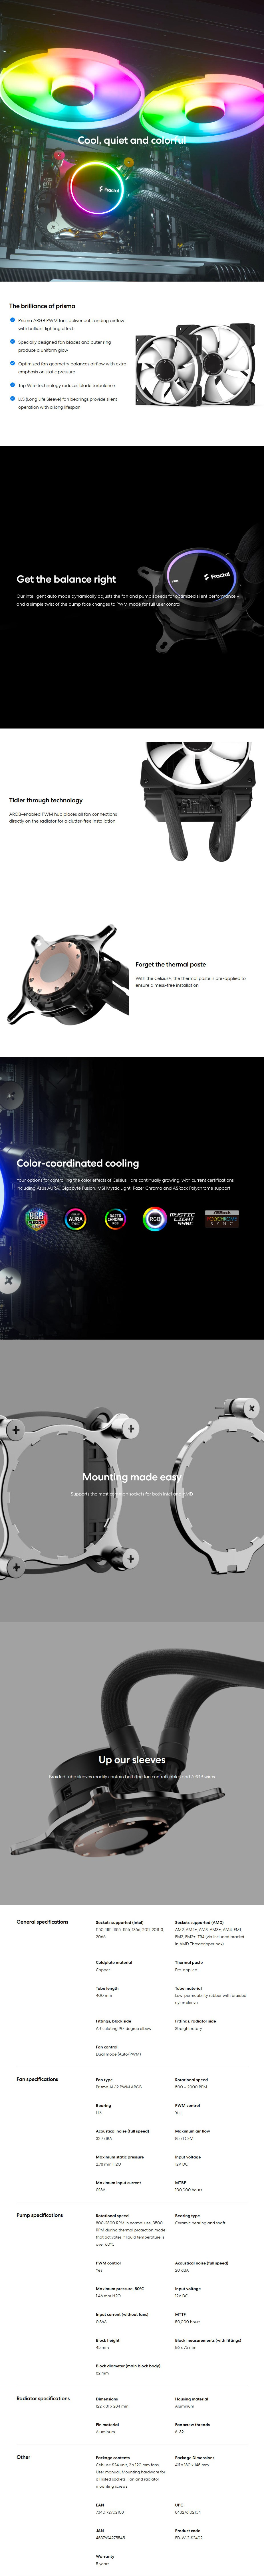 A large marketing image providing additional information about the product Fractal Design Celsius+ S24 Prisma 240mm AIO CPU Cooler - Additional alt info not provided